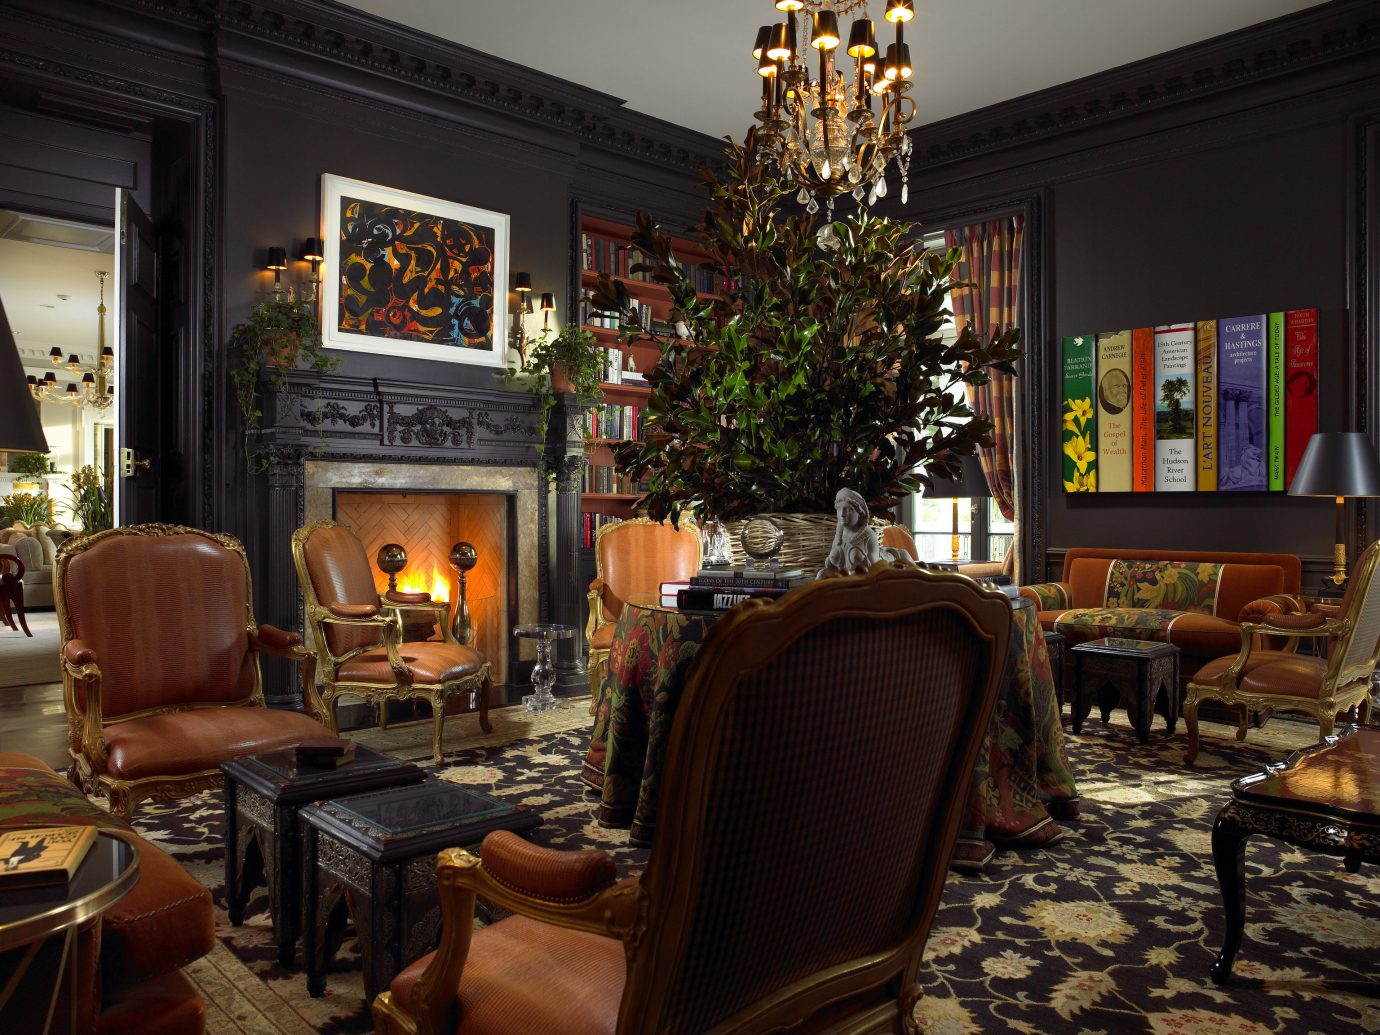 Hotels New York Romantic Hotels indoor room Living wall floor living room interior design window ceiling home Fireplace dining room furniture decorated